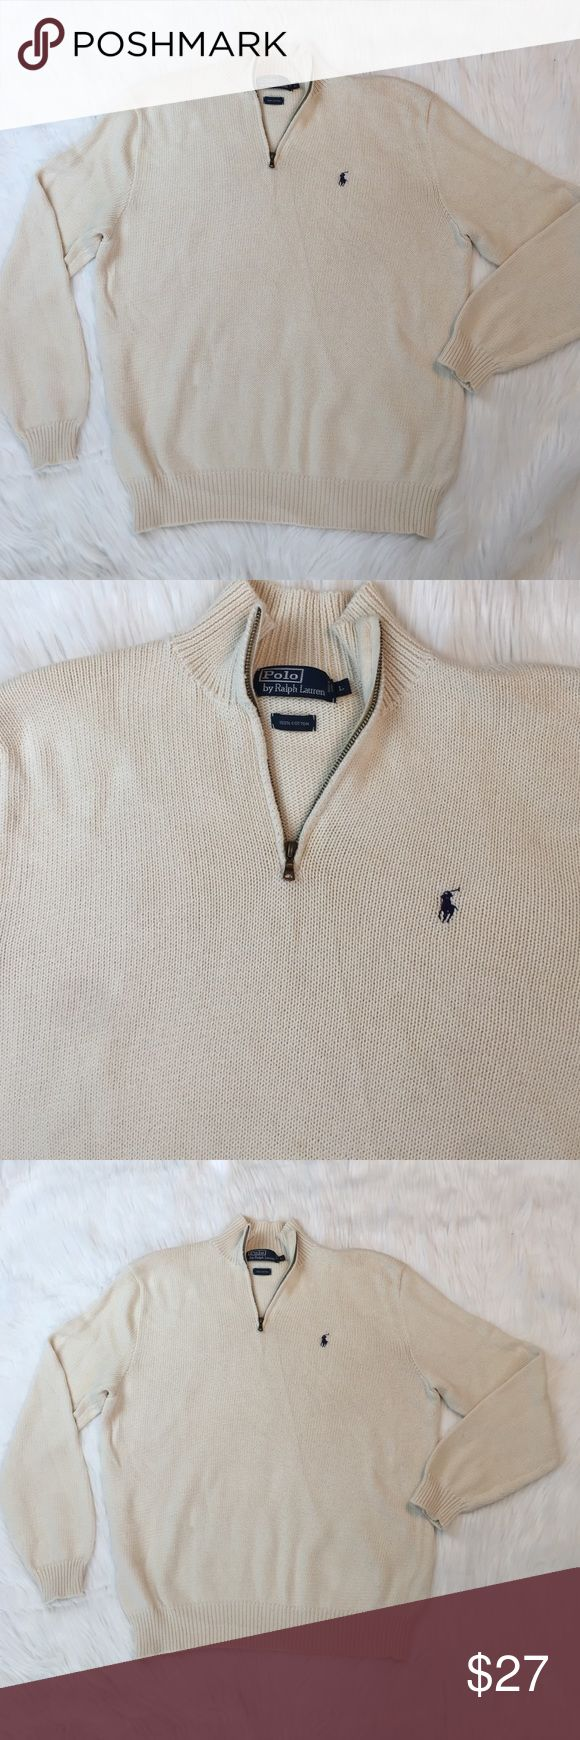 L Men's Cream Zip Pullover Polo RL Preowned no flaws 100% cotton Polo by Ralph Lauren Sweaters Zip Up